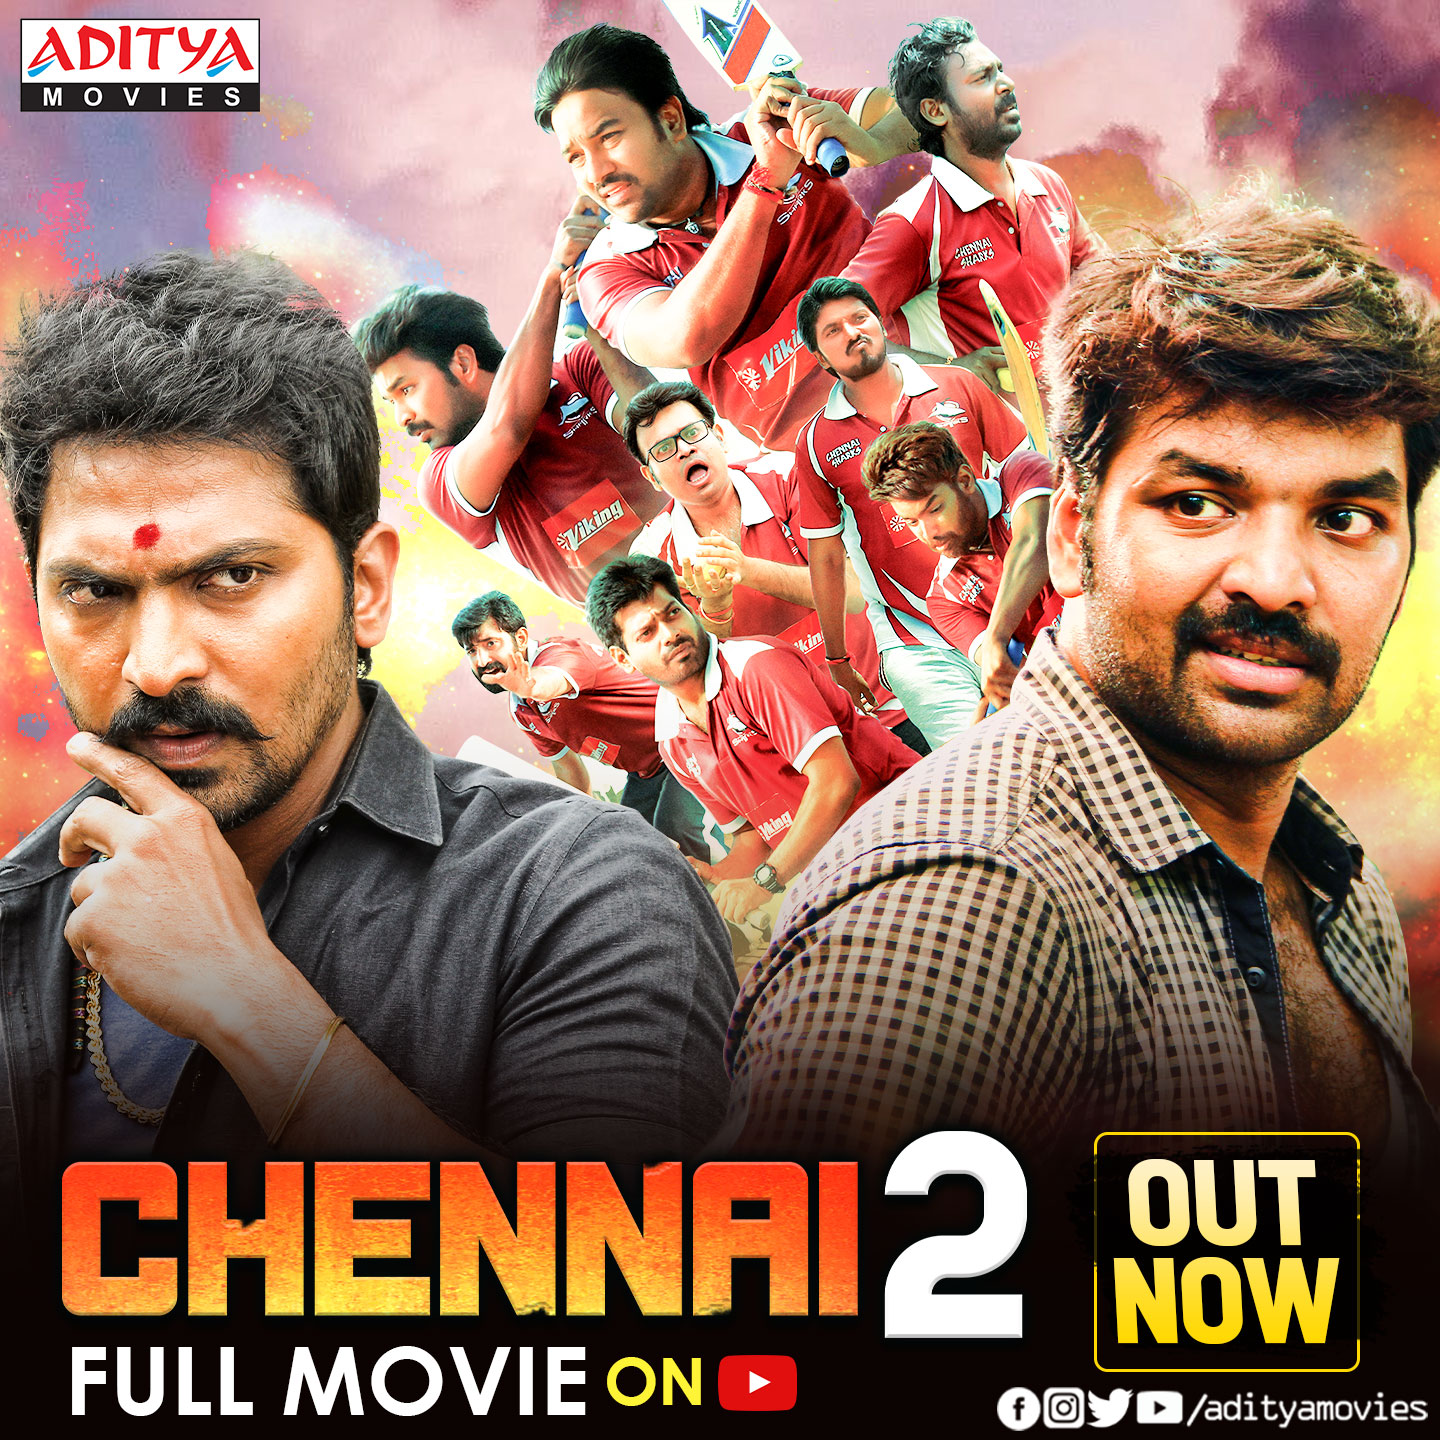 Chennai 2 (Chennai 600028 II) 2021 Hindi Dubbed 720p HDRip 900MB Download